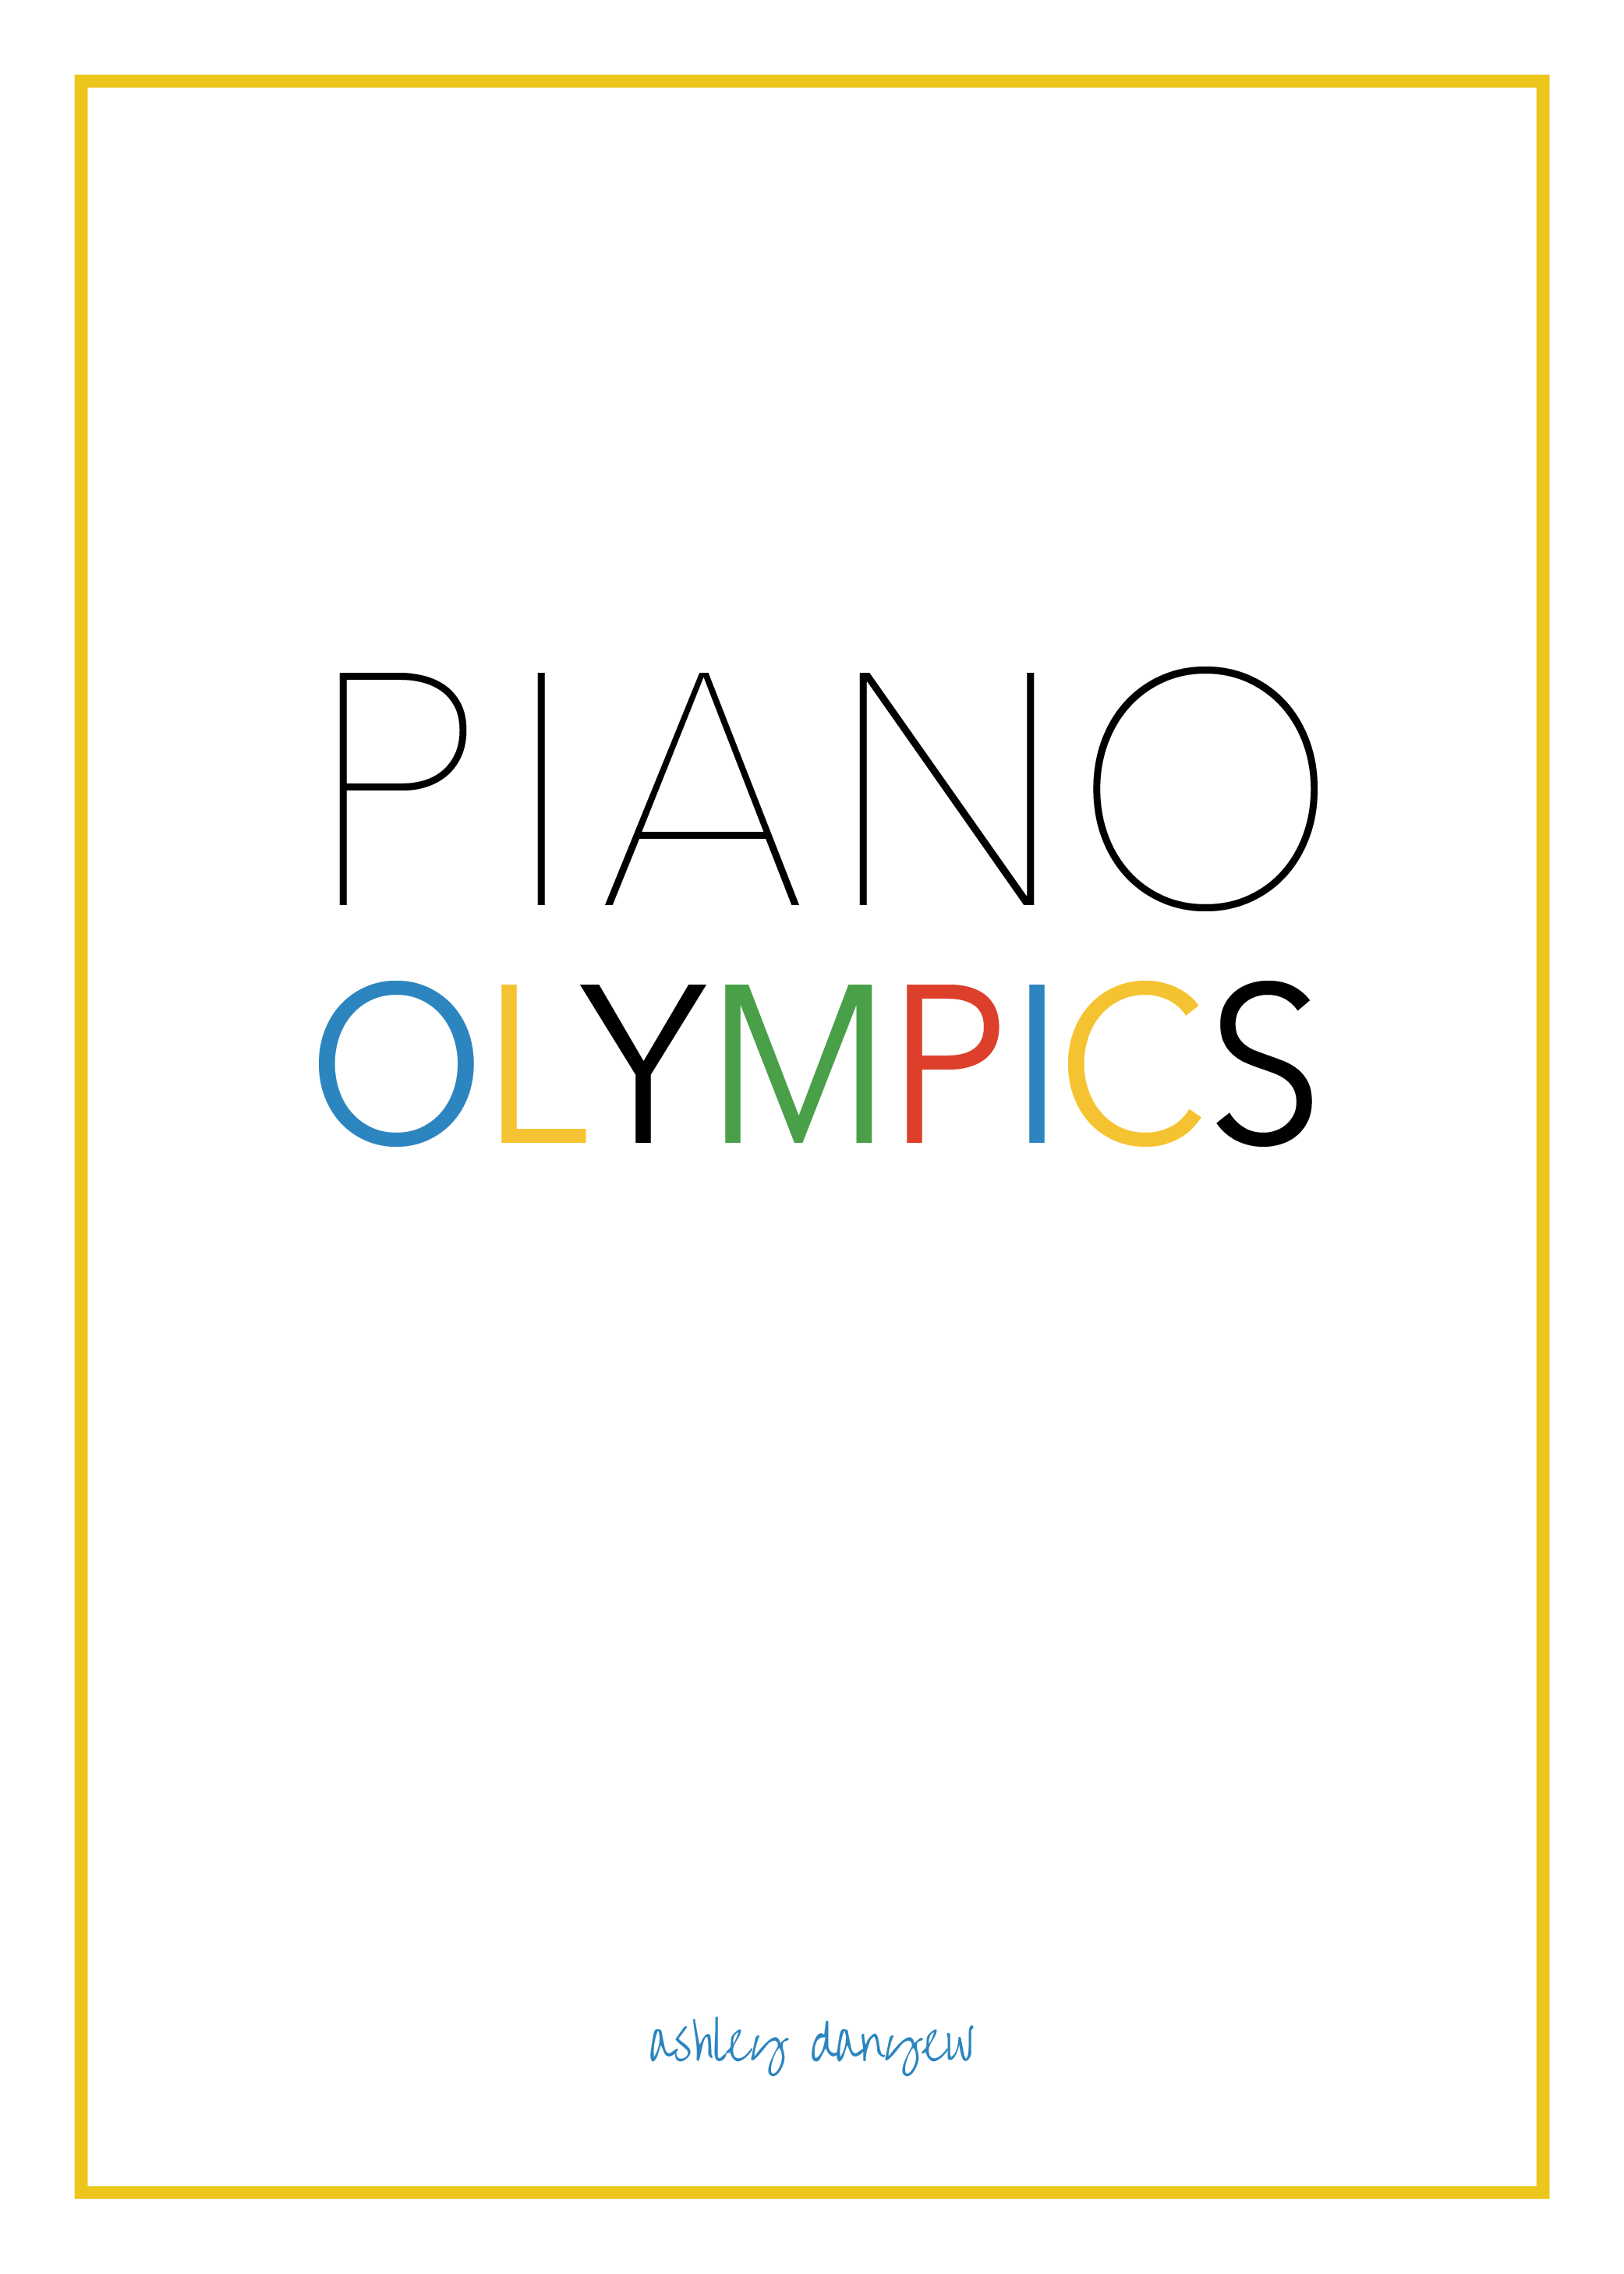 Piano Olympics-01.png